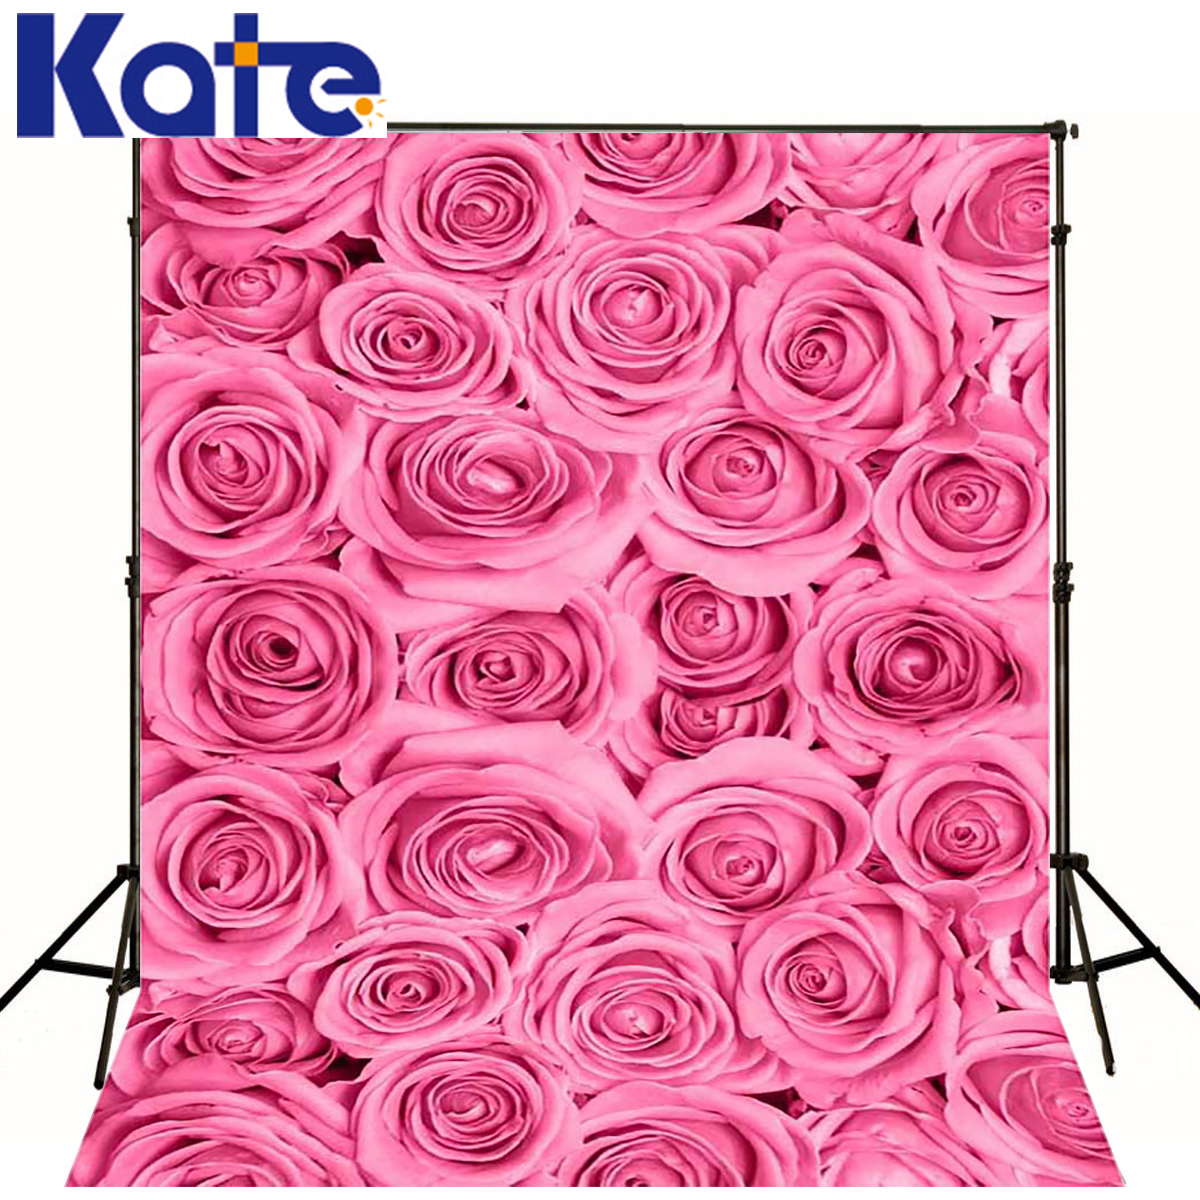 KATE ValentineS Day  Backdrop Photography Backdrops 5x7ft 3D Pattern Backdrop Pink Roses photocall backgrounds for Photo Studio<br>